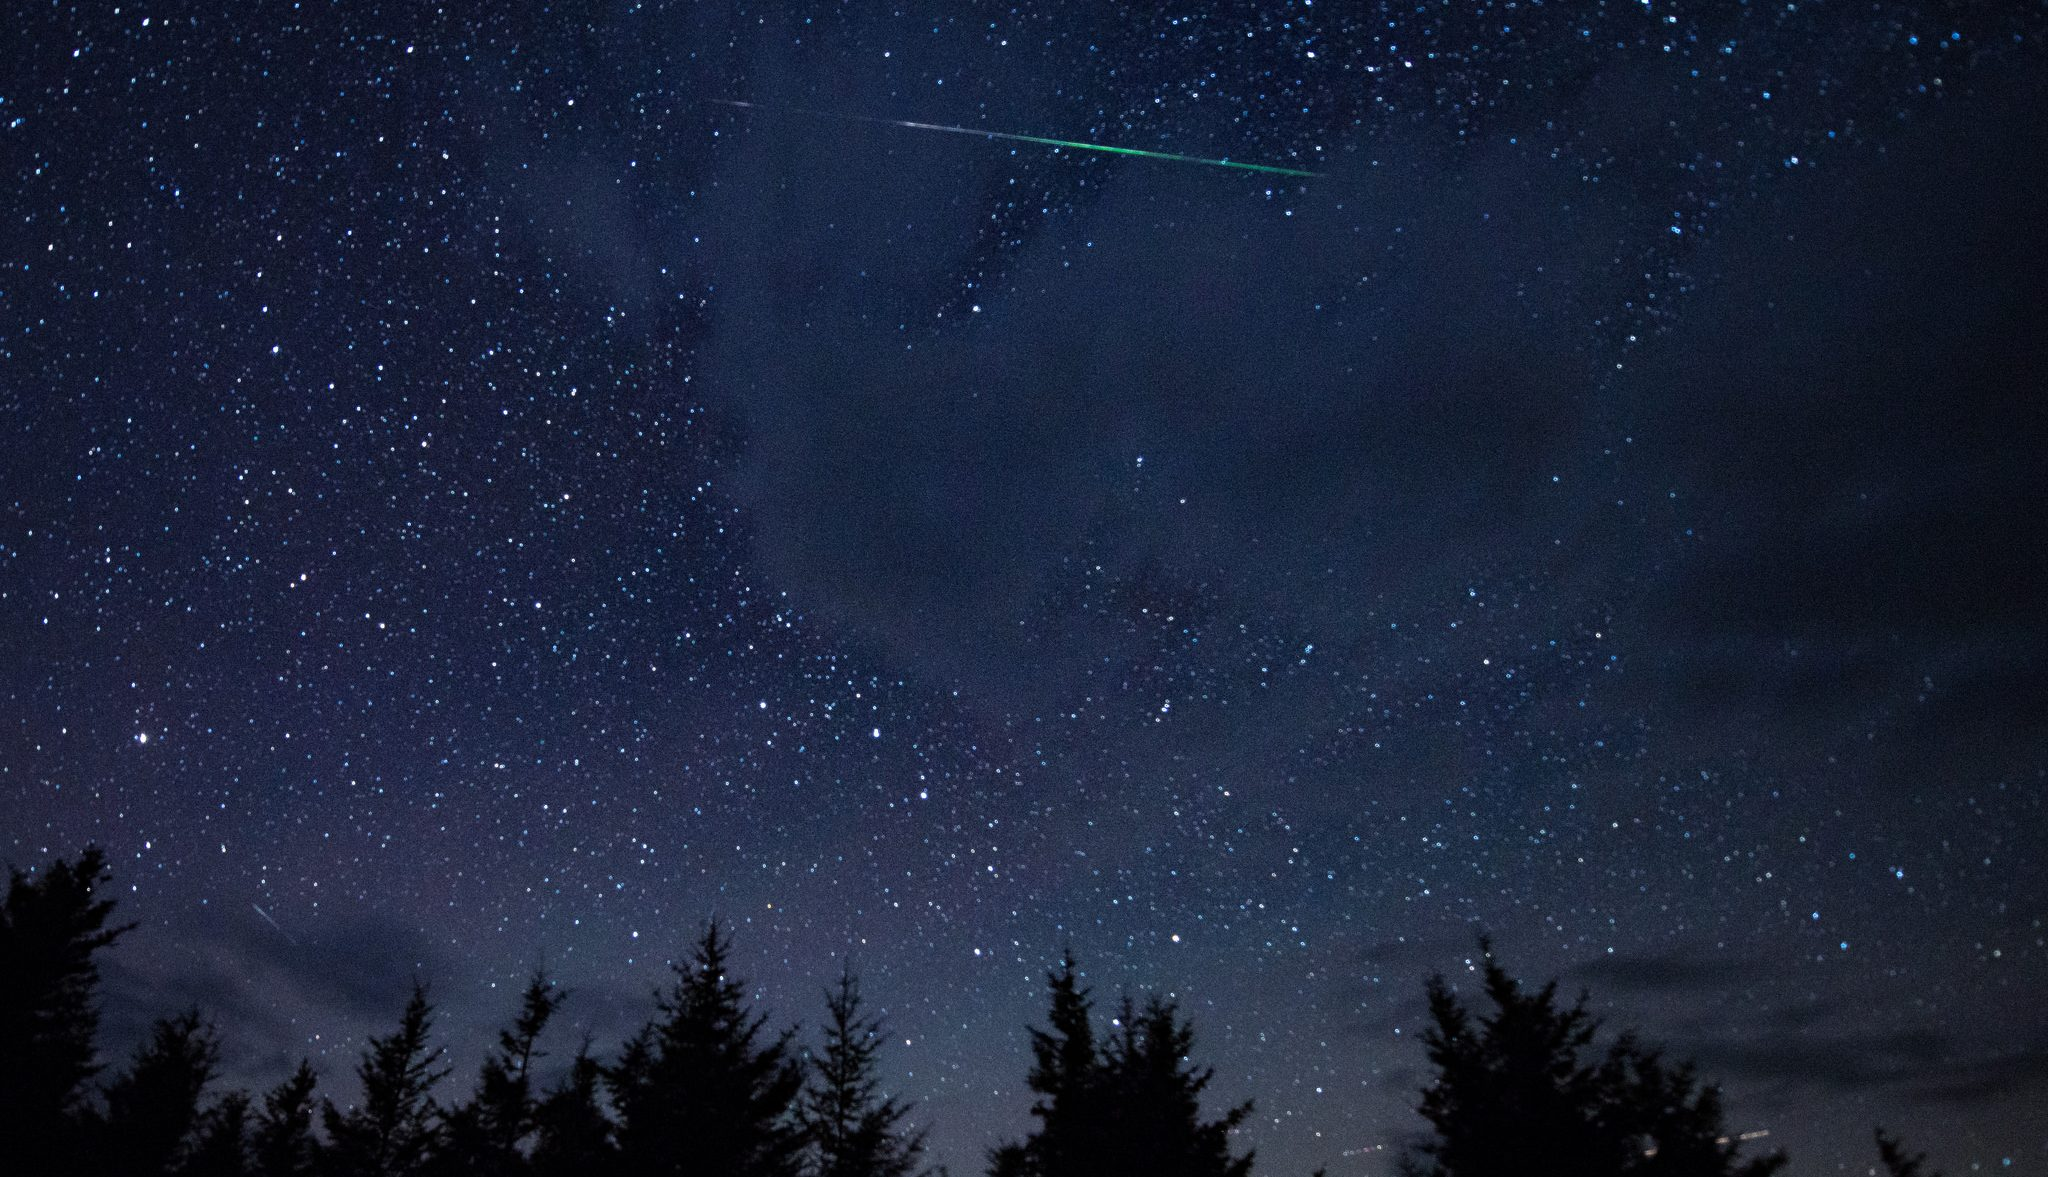 Image of the Perseid meteor shower.